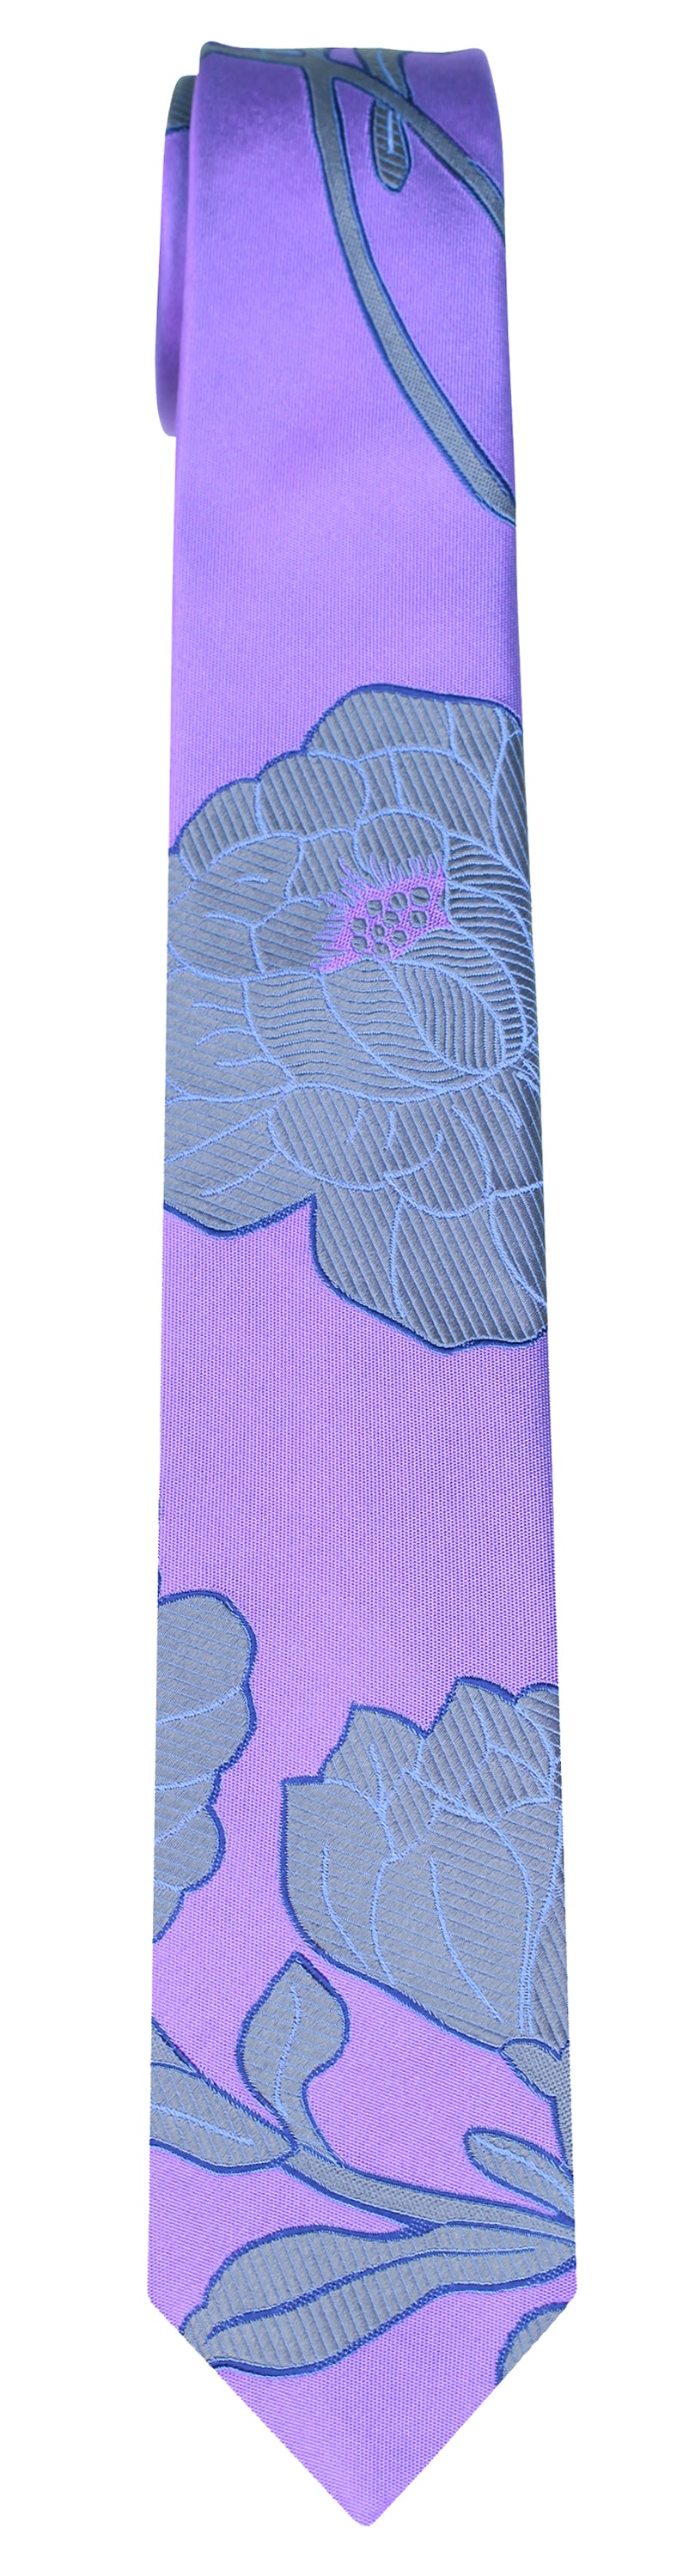 Mimi Fong Large Flower Tie in Lavender